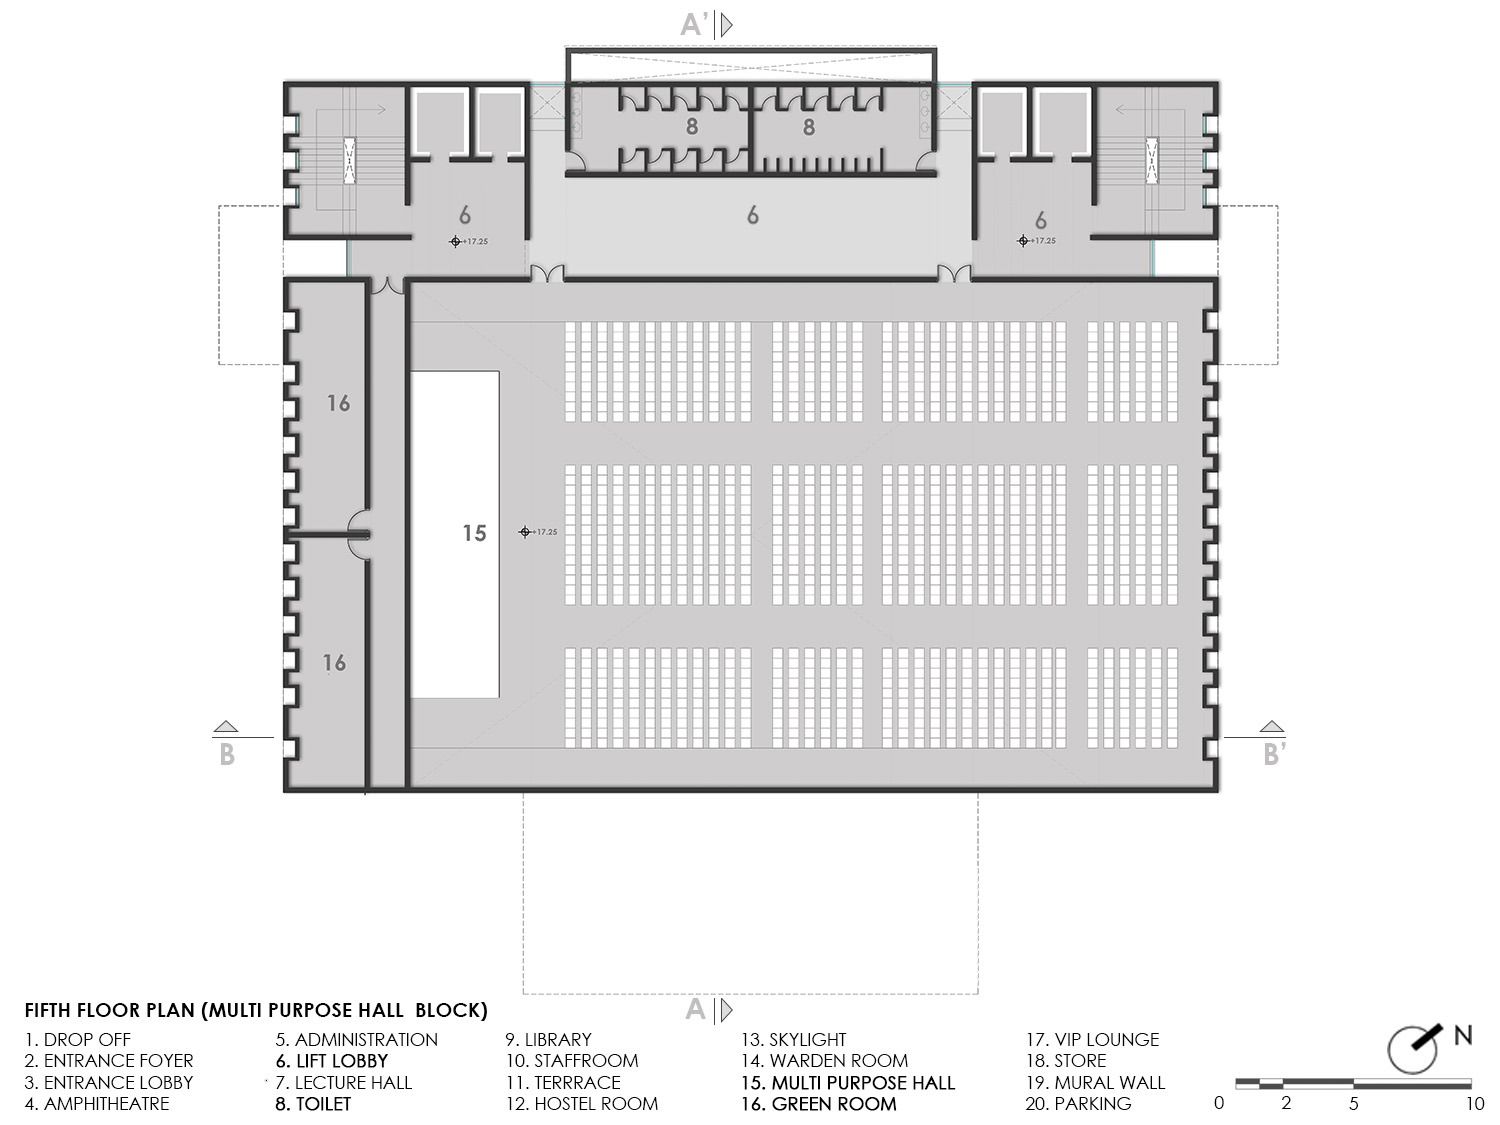 FIFTH FLOOR PLAN KNS ARCHITECTS}